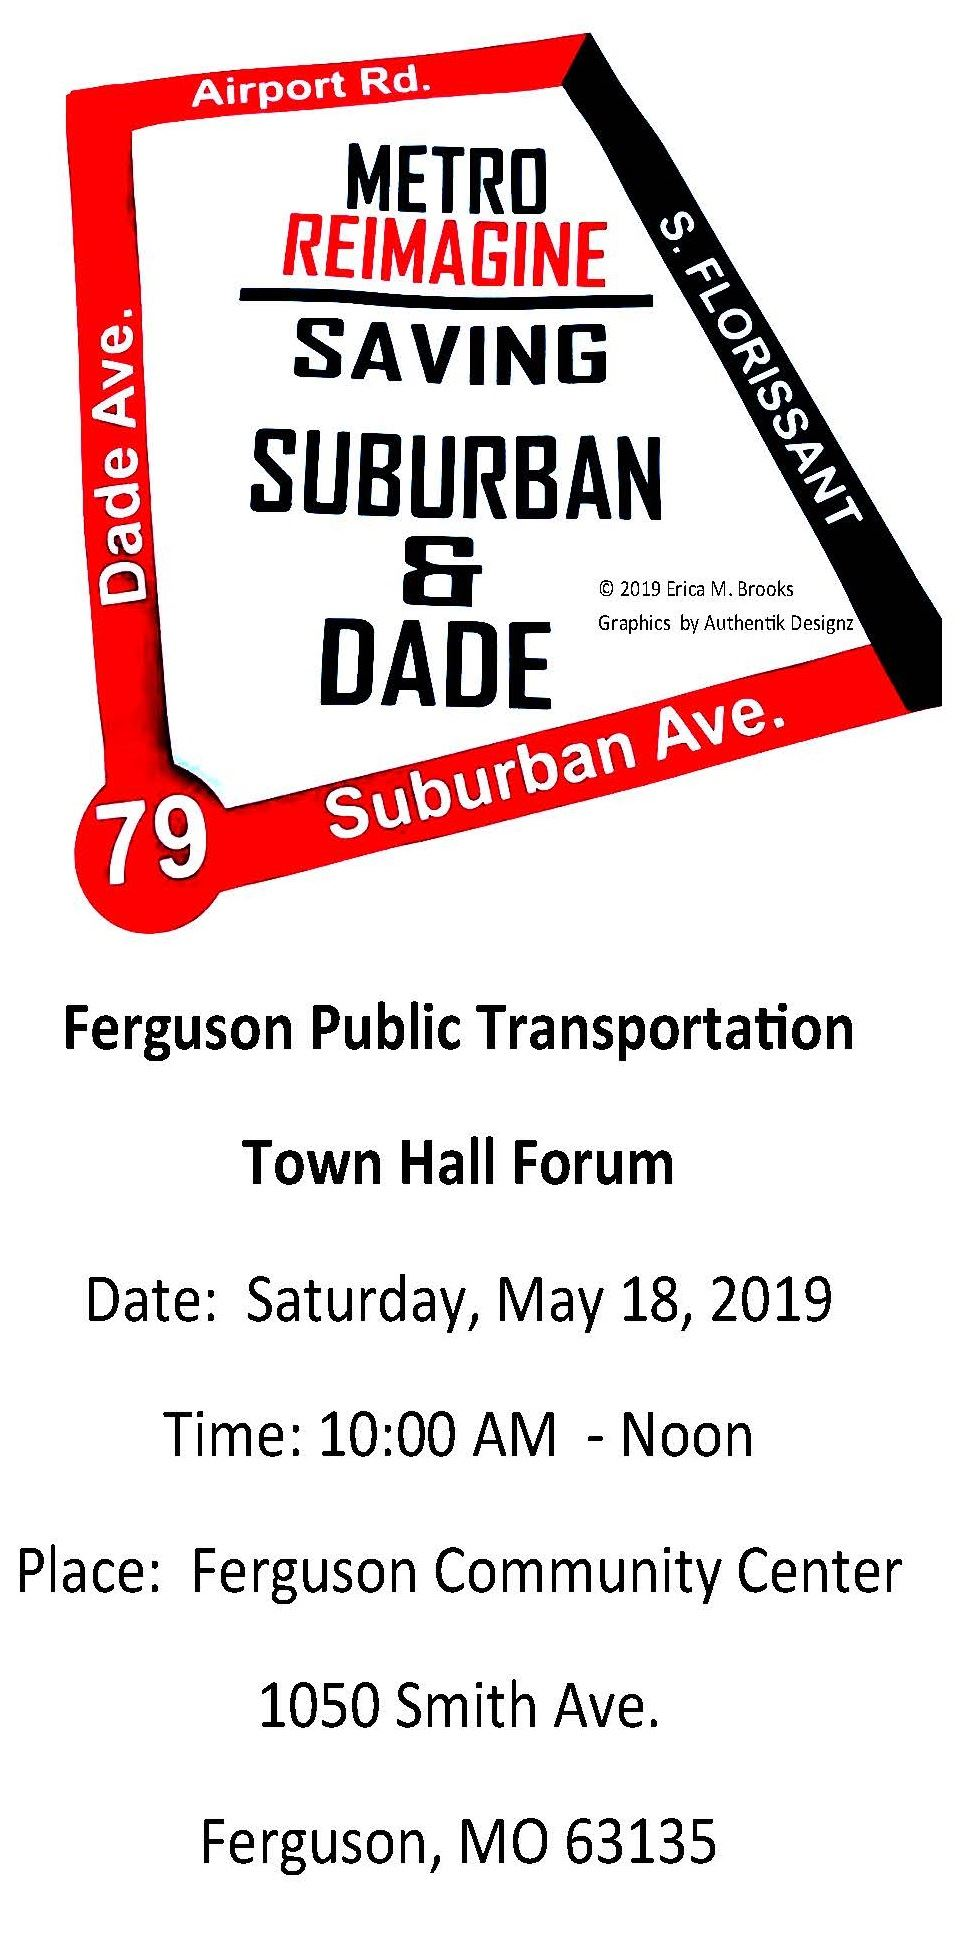 V2 Saving Suburban and dade creation by erica m brooks designed by George Spann Created4-6-19  flyer